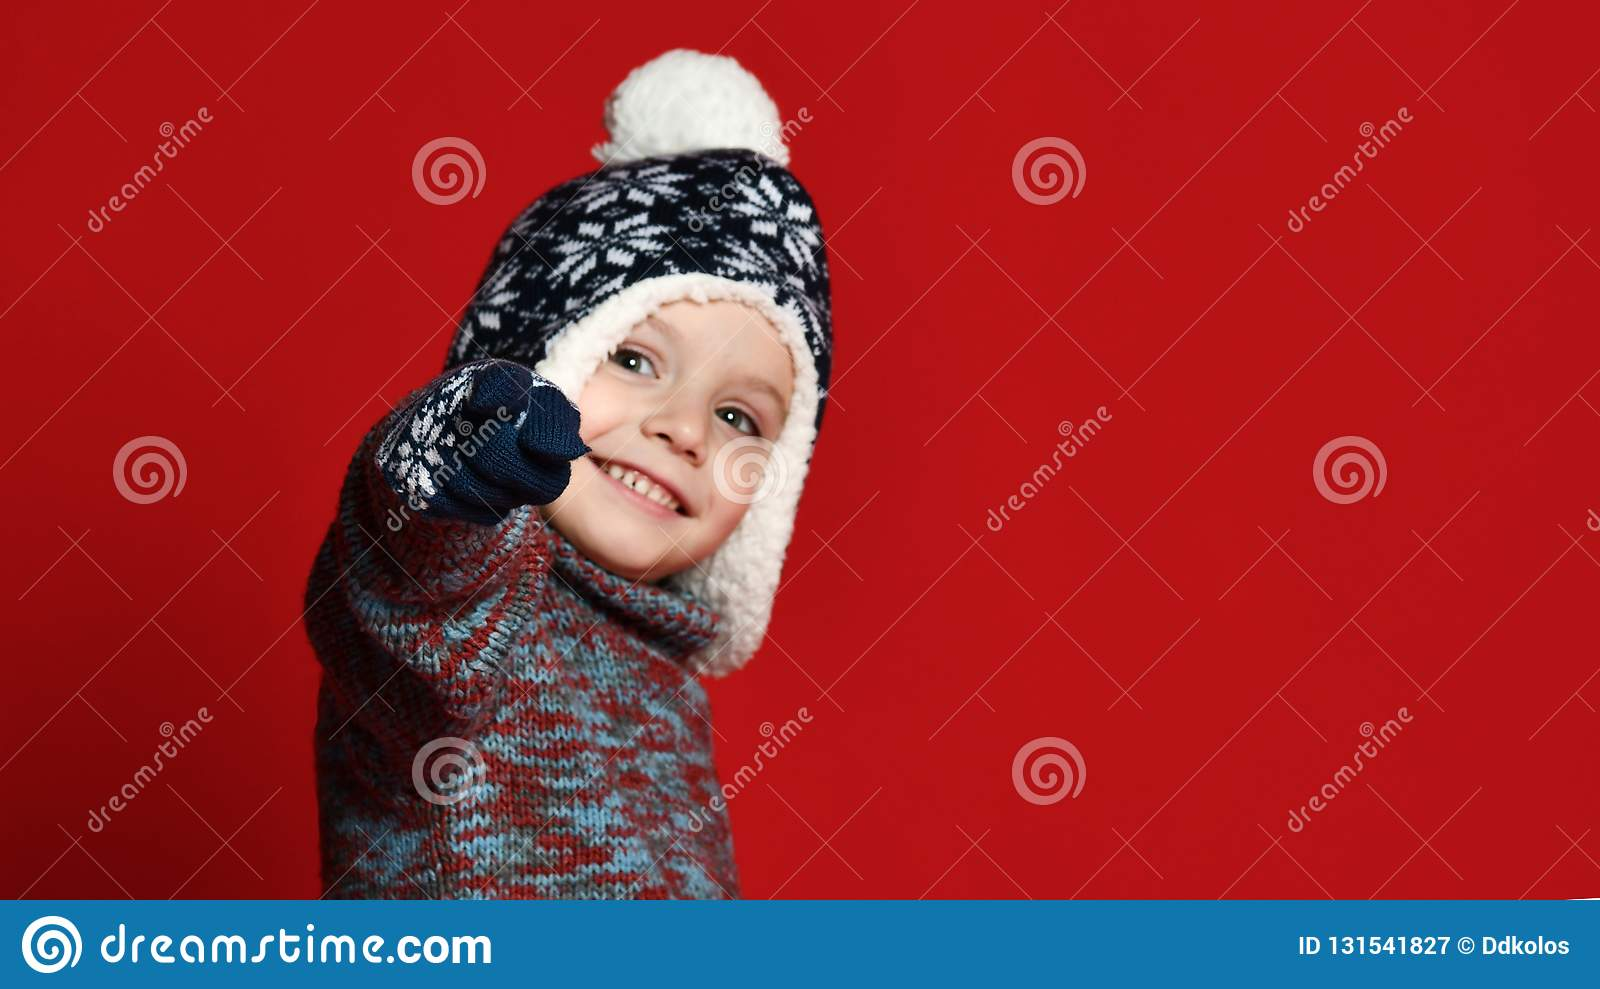 e8794774c Child Boy In Knitted Hat And Sweater And Mittens Having Fun Over ...